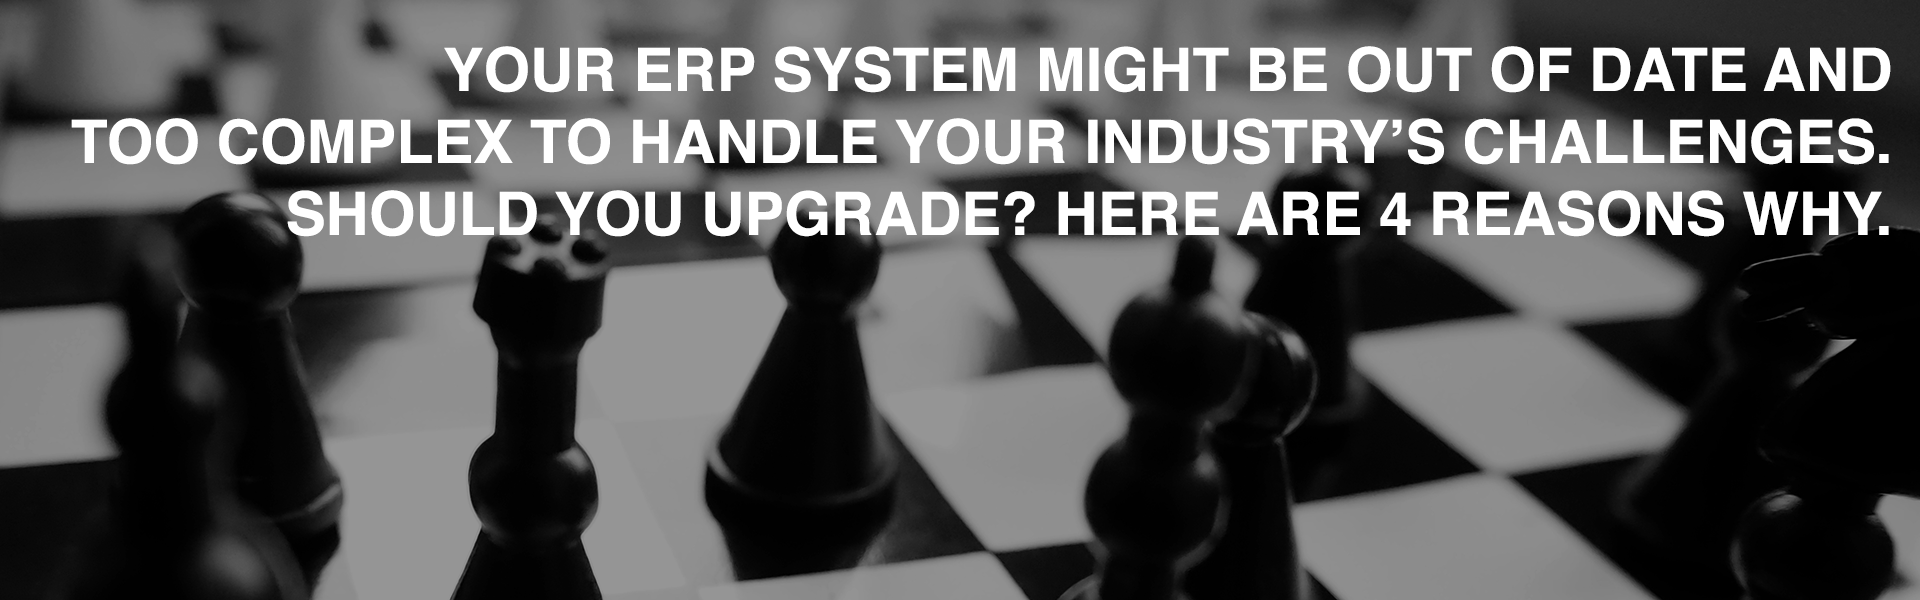 Top 4 Reasons To Upgrade ERP